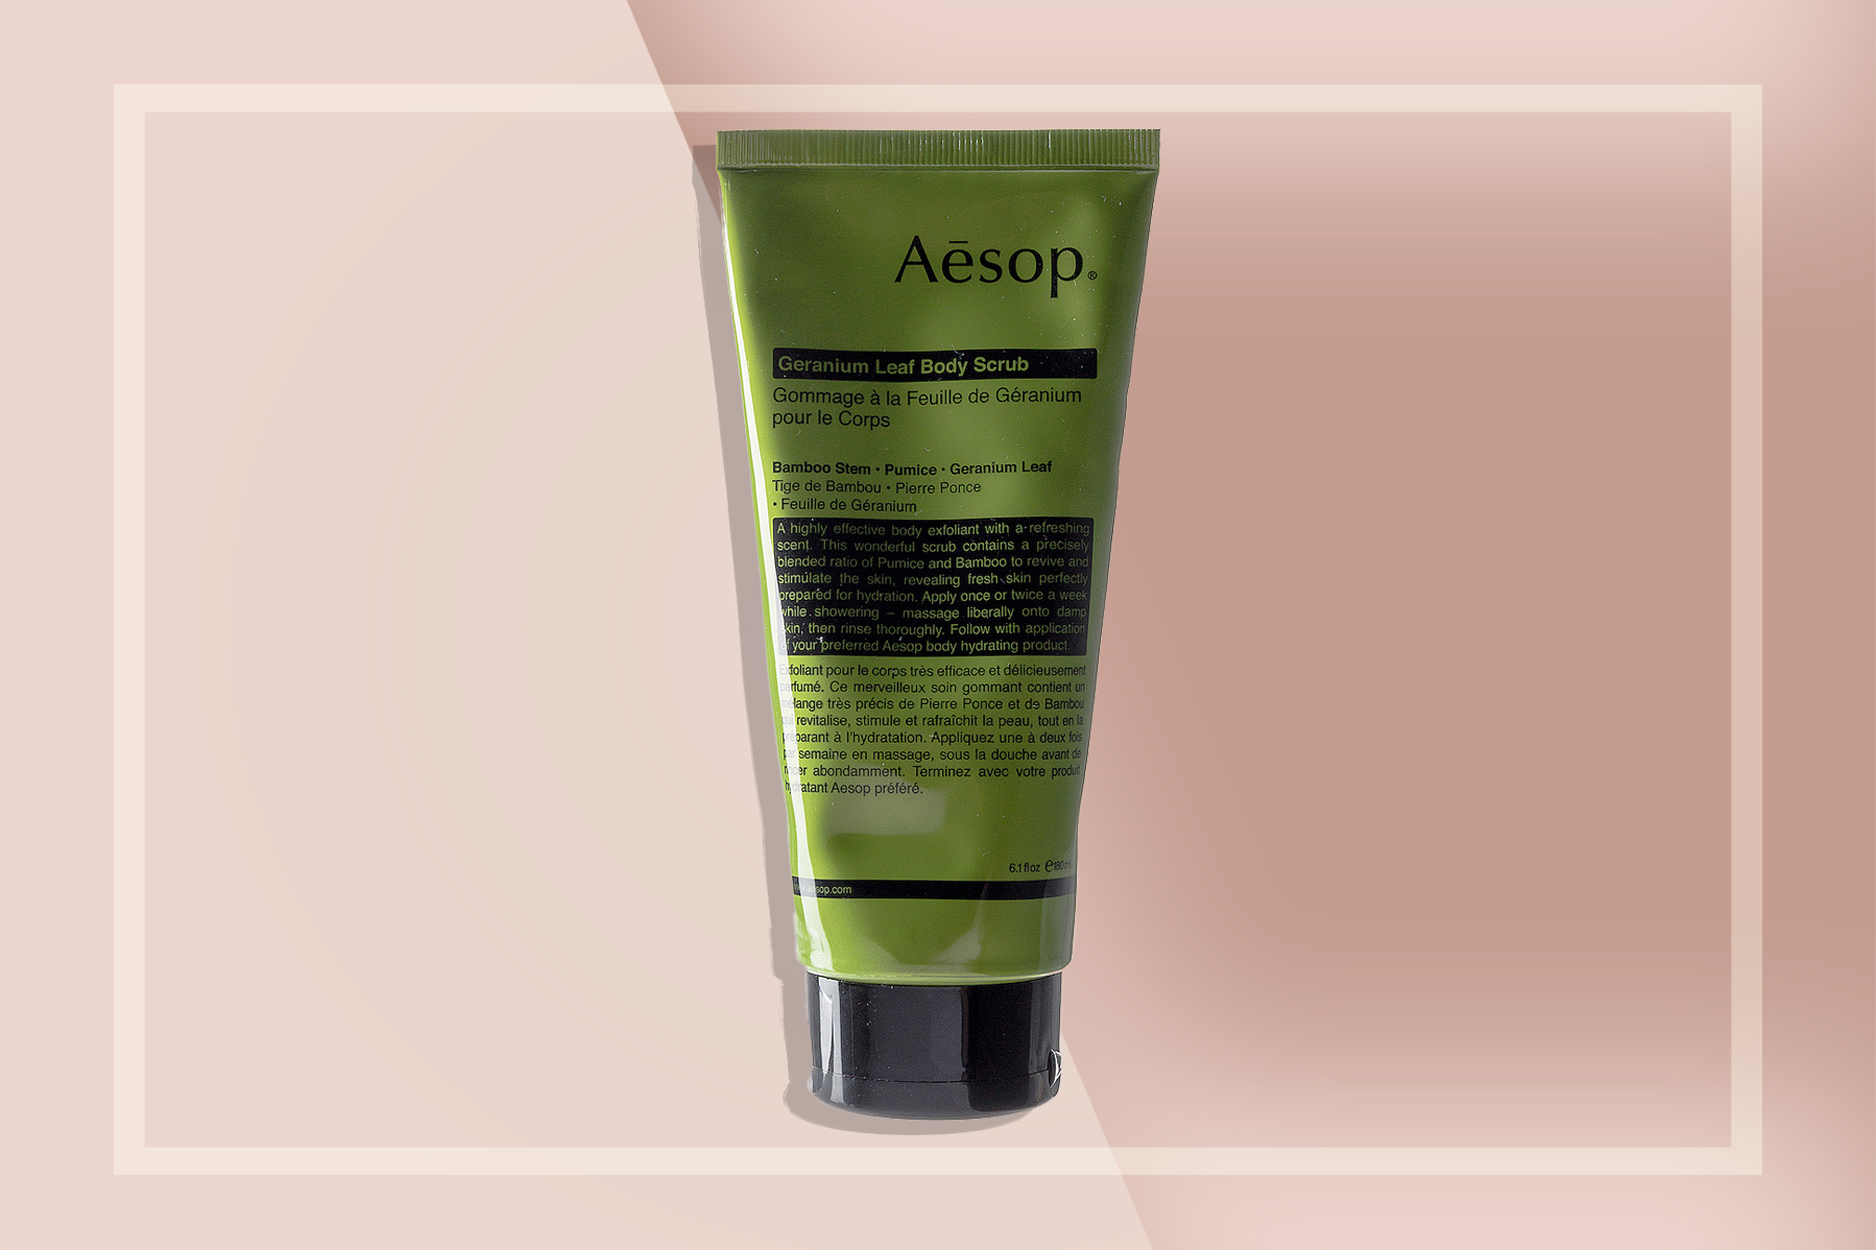 Hand Cream Aesop Body Scrub